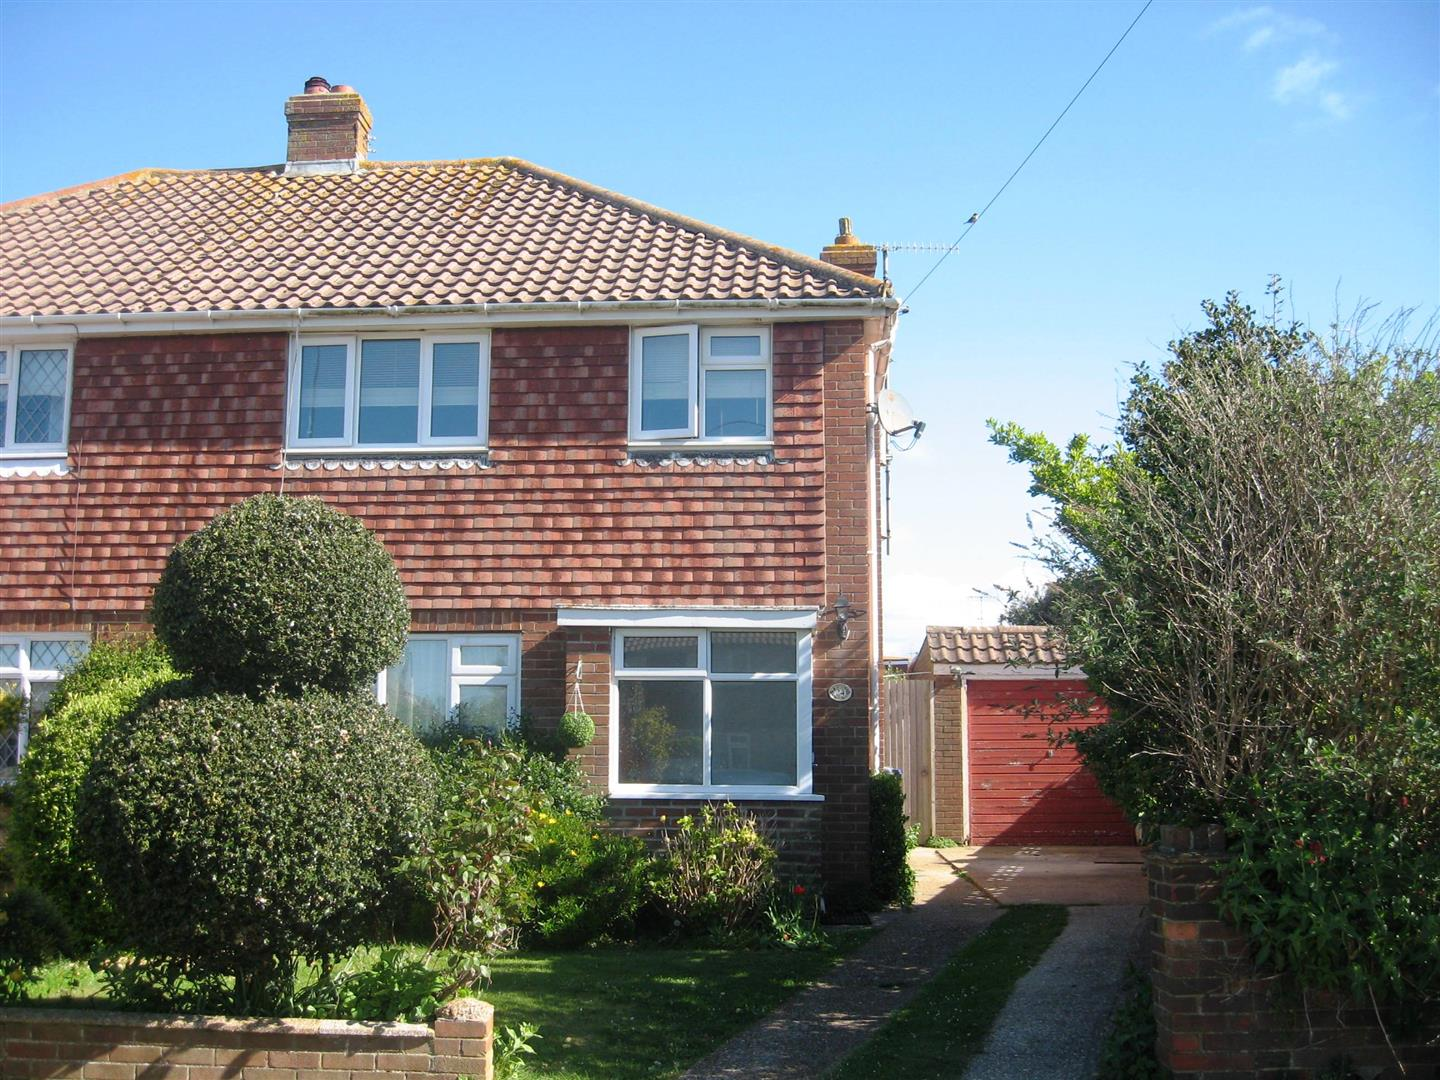 4 Bedrooms Property for sale in Nursery Close, Shoreham-By-Sea